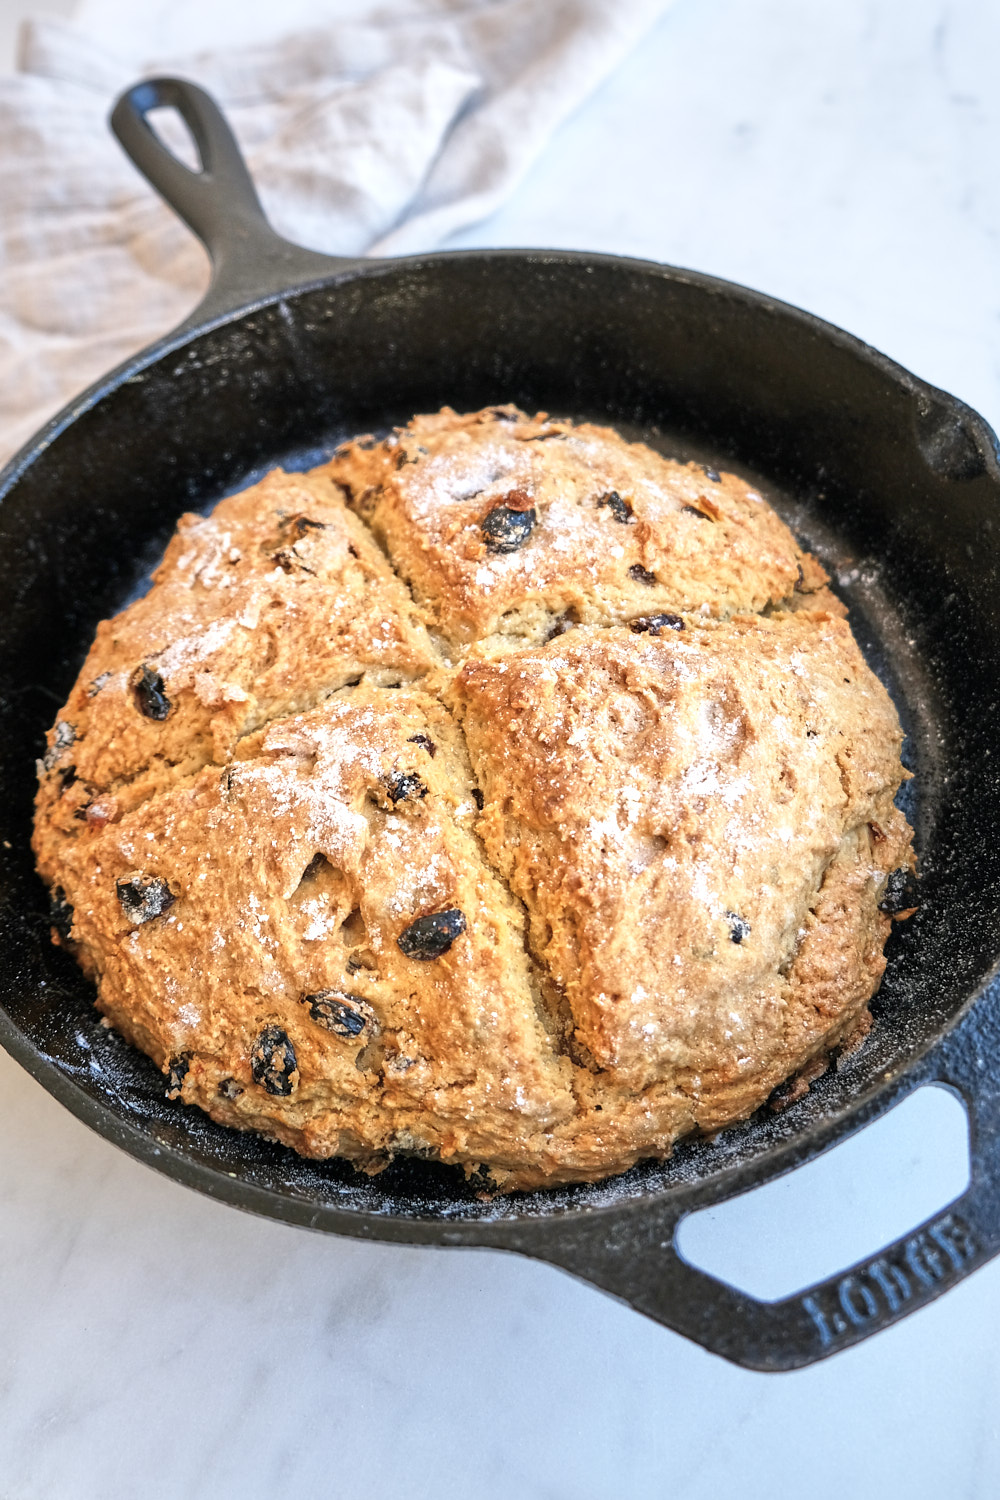 A loaf of irish soda bread in an iron skillet